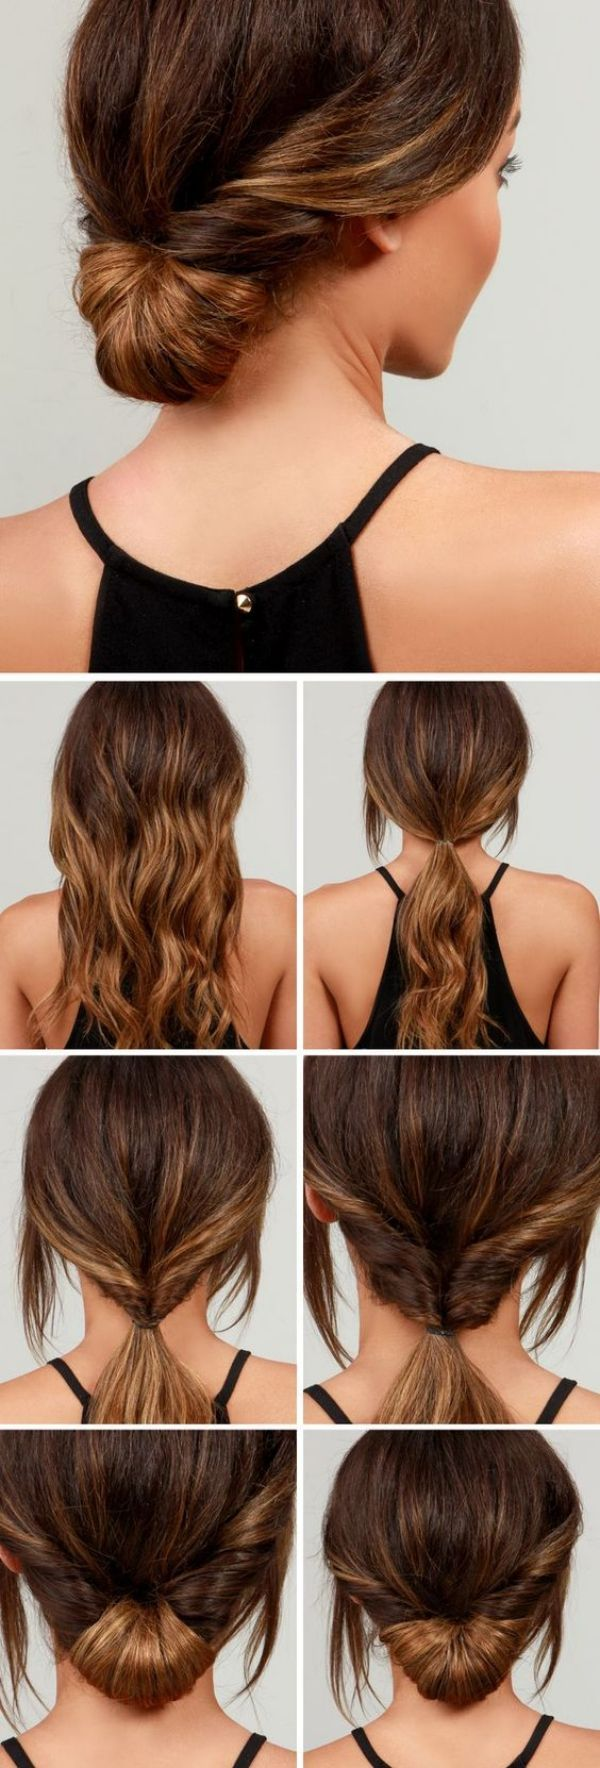 80 Simple Five Minute Hairstyles for Office Women (Complete Tutorials